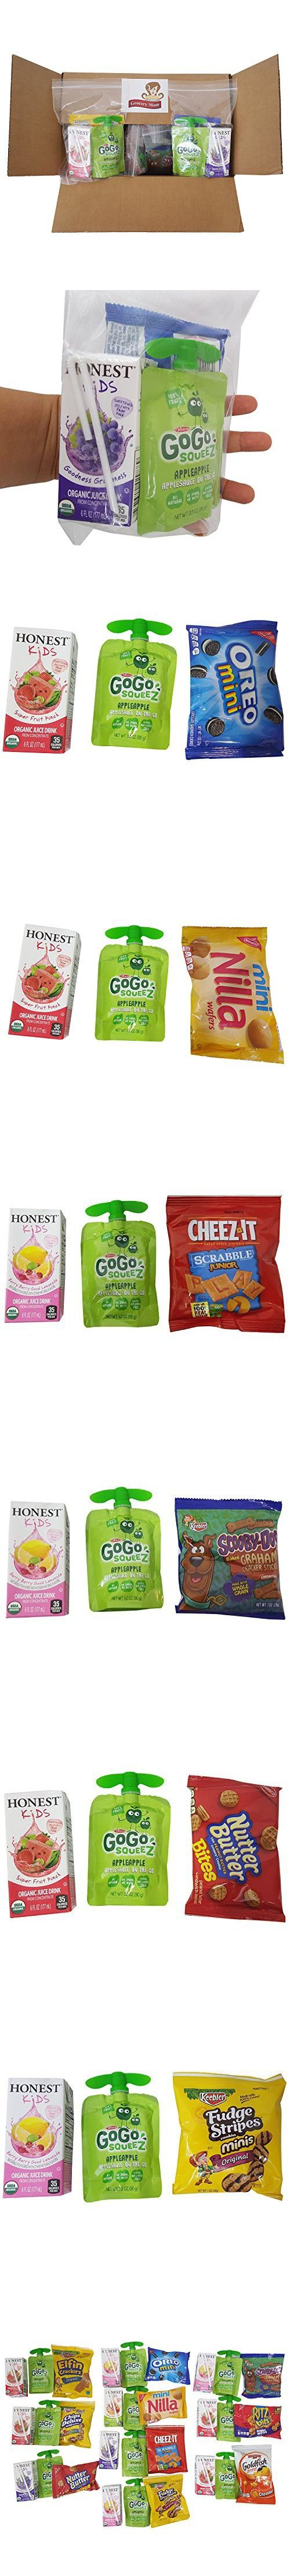 Gogo Squeez & Honest Kid Juice in bundle, Healthy and Fun Snacks for Kids In a Box(30 count), School Lunch Snack Care Packages for 10 Days, 2 School Weeks, Gift Basket, Sports Team practice, Road Trip